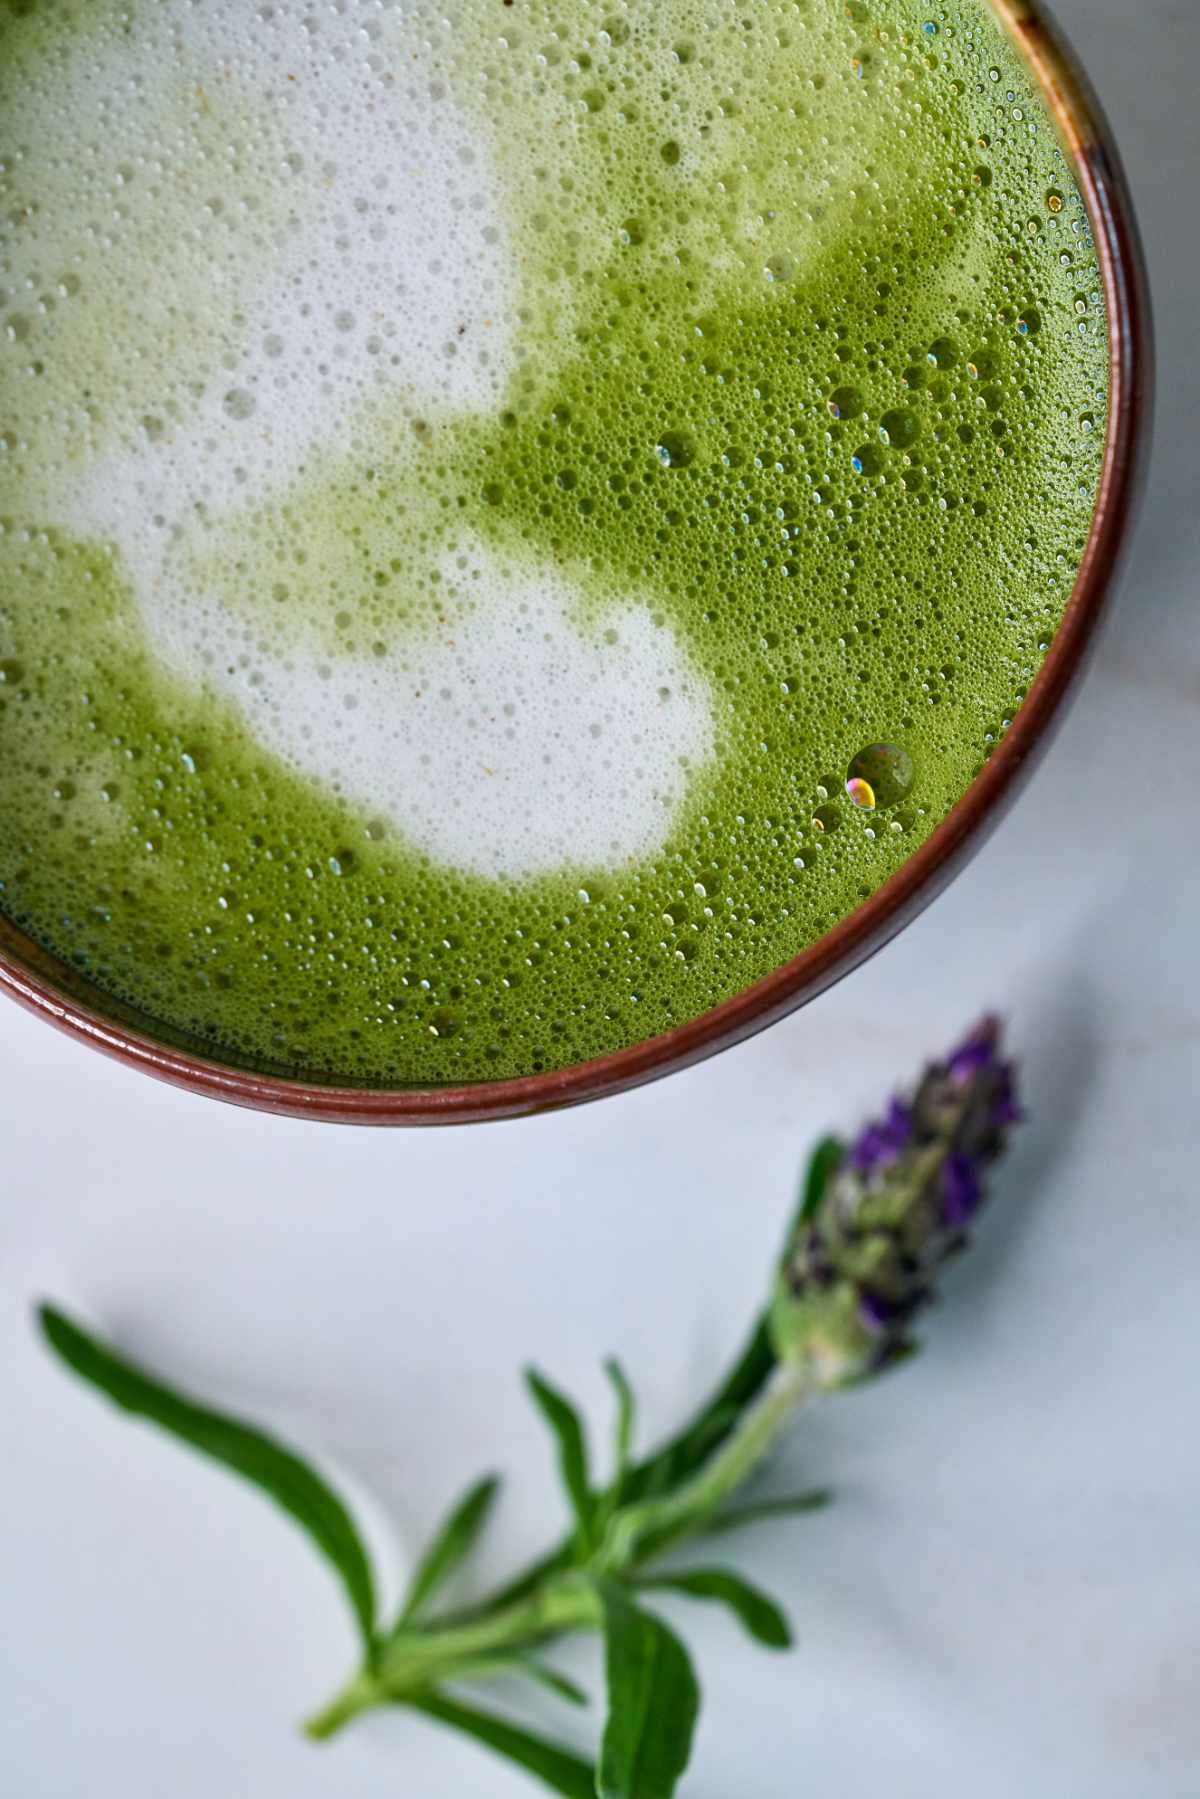 Green latte next to a sprig of lavender.